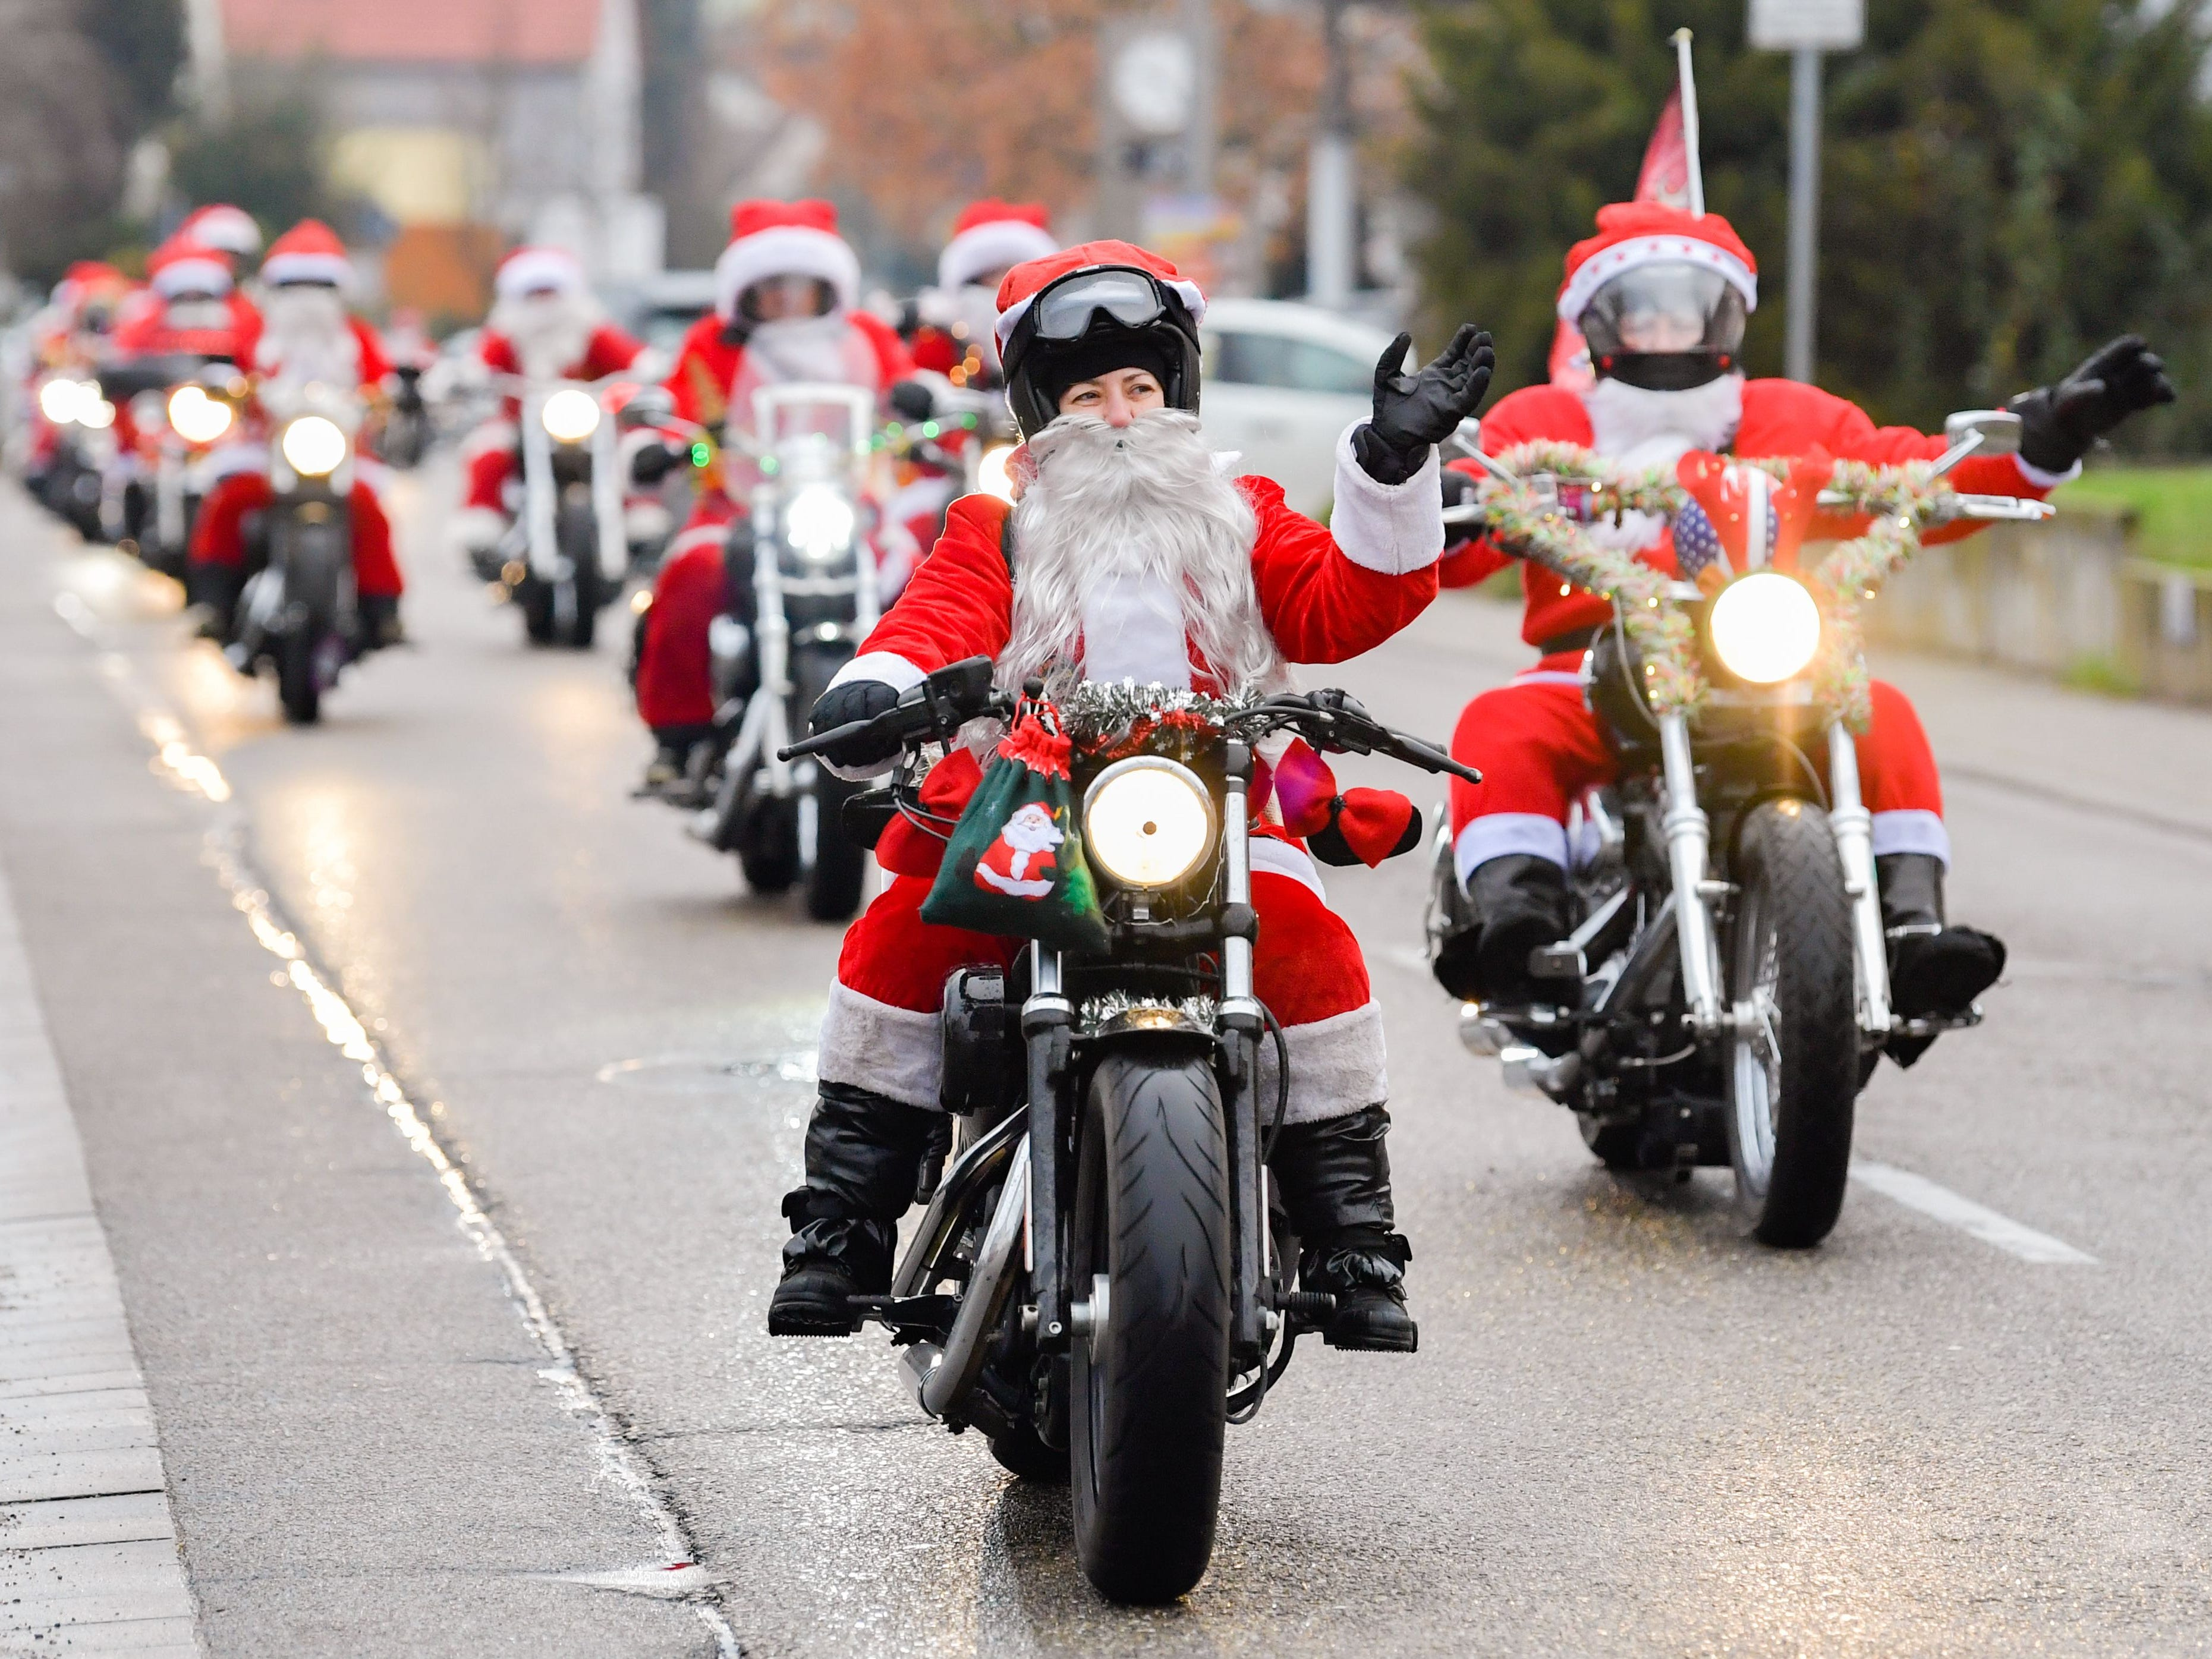 """Motor cyclist ride during a charity event titled """"Harley Davidson riding Santas"""" Dec. 6, 2018 in Lustadt, Germany."""